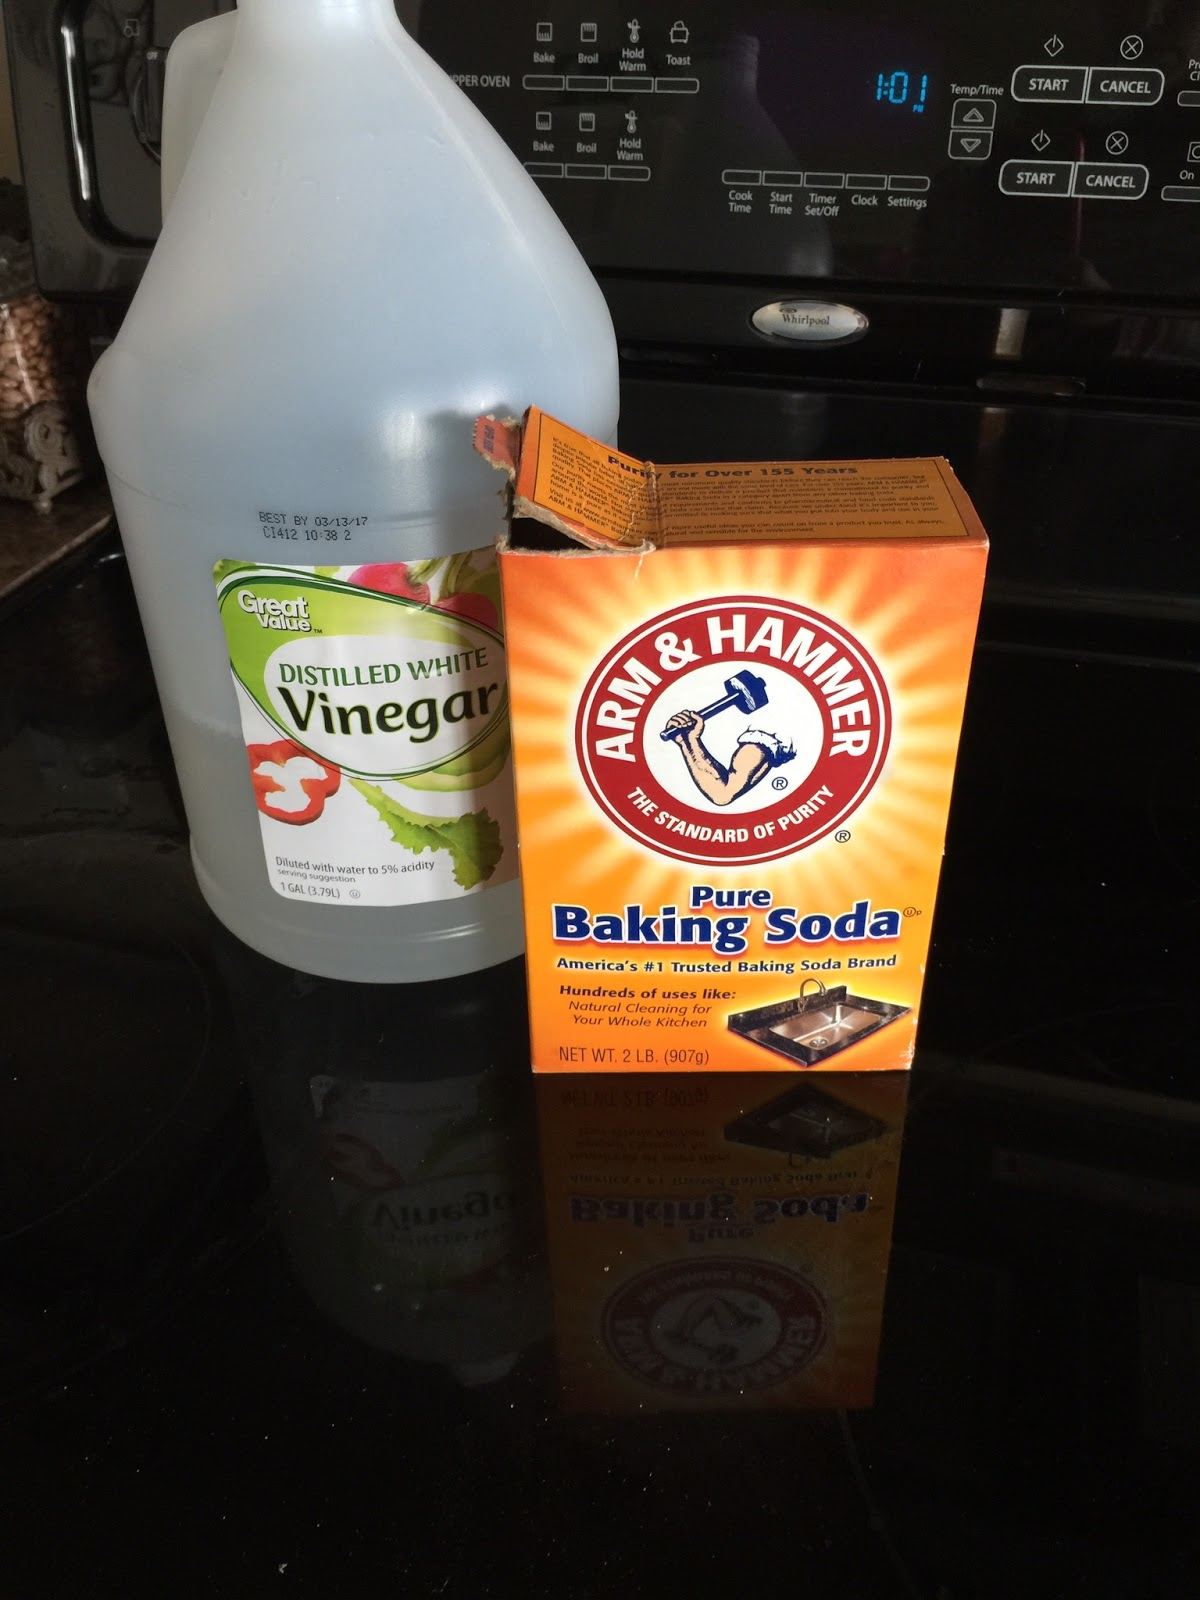 using vinegar and baking soda to clean a glass stove top